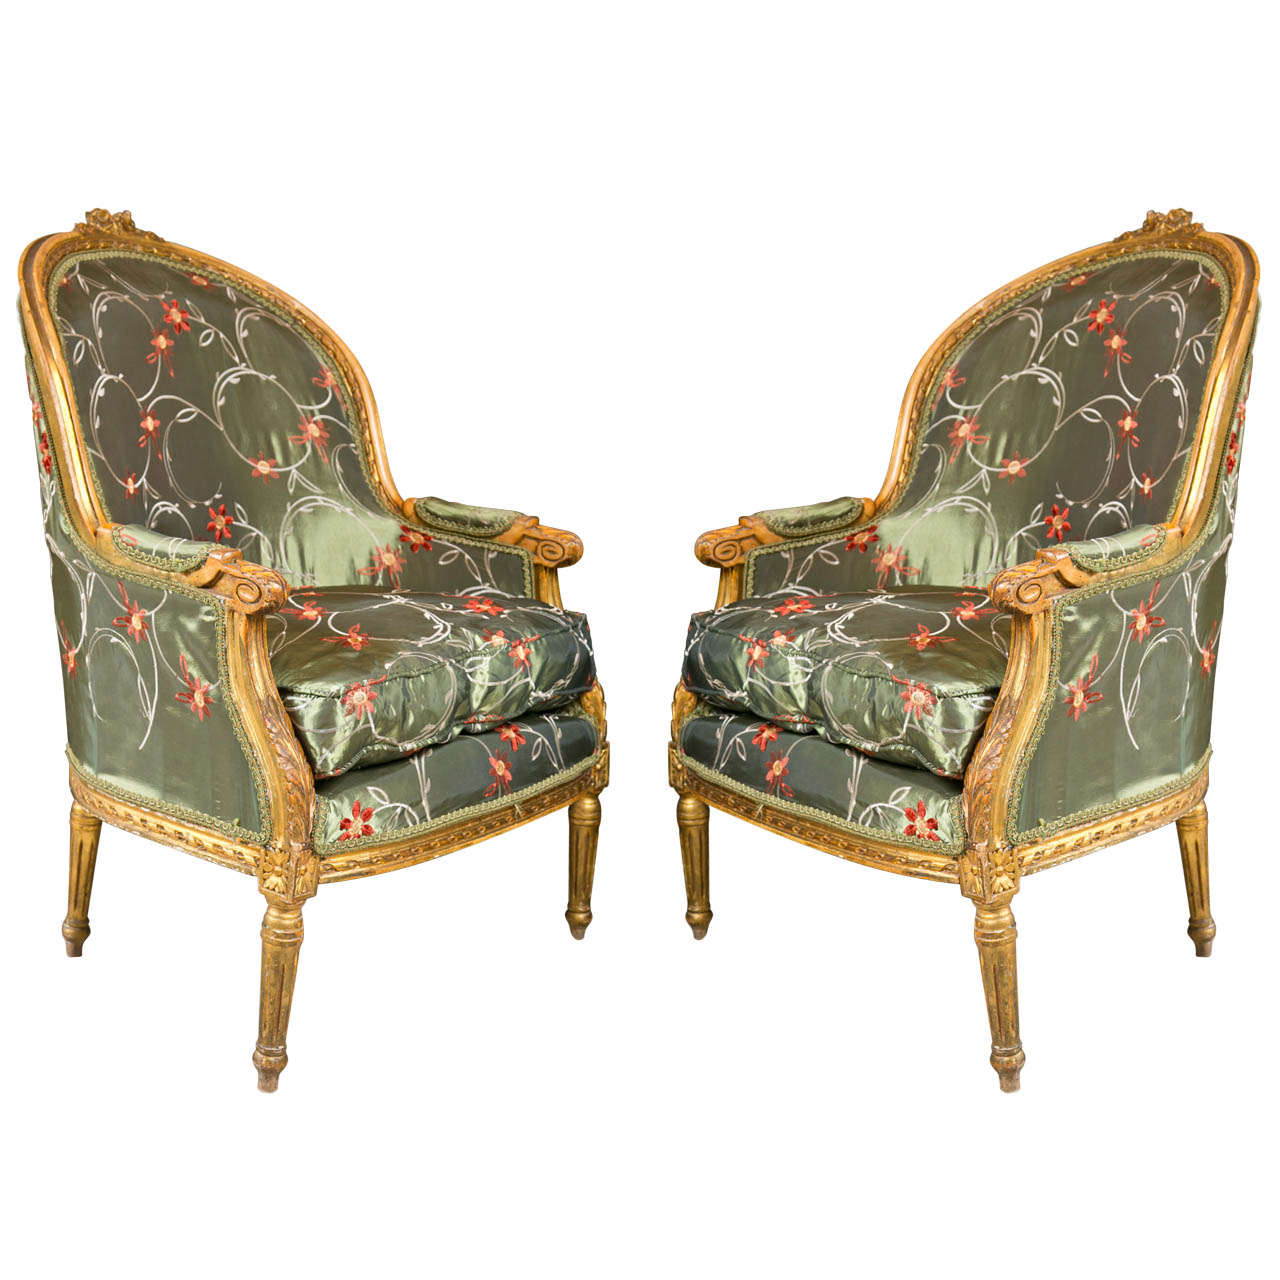 Pair Of French Louis Xvi Style Bergere Chairs By Jansen At